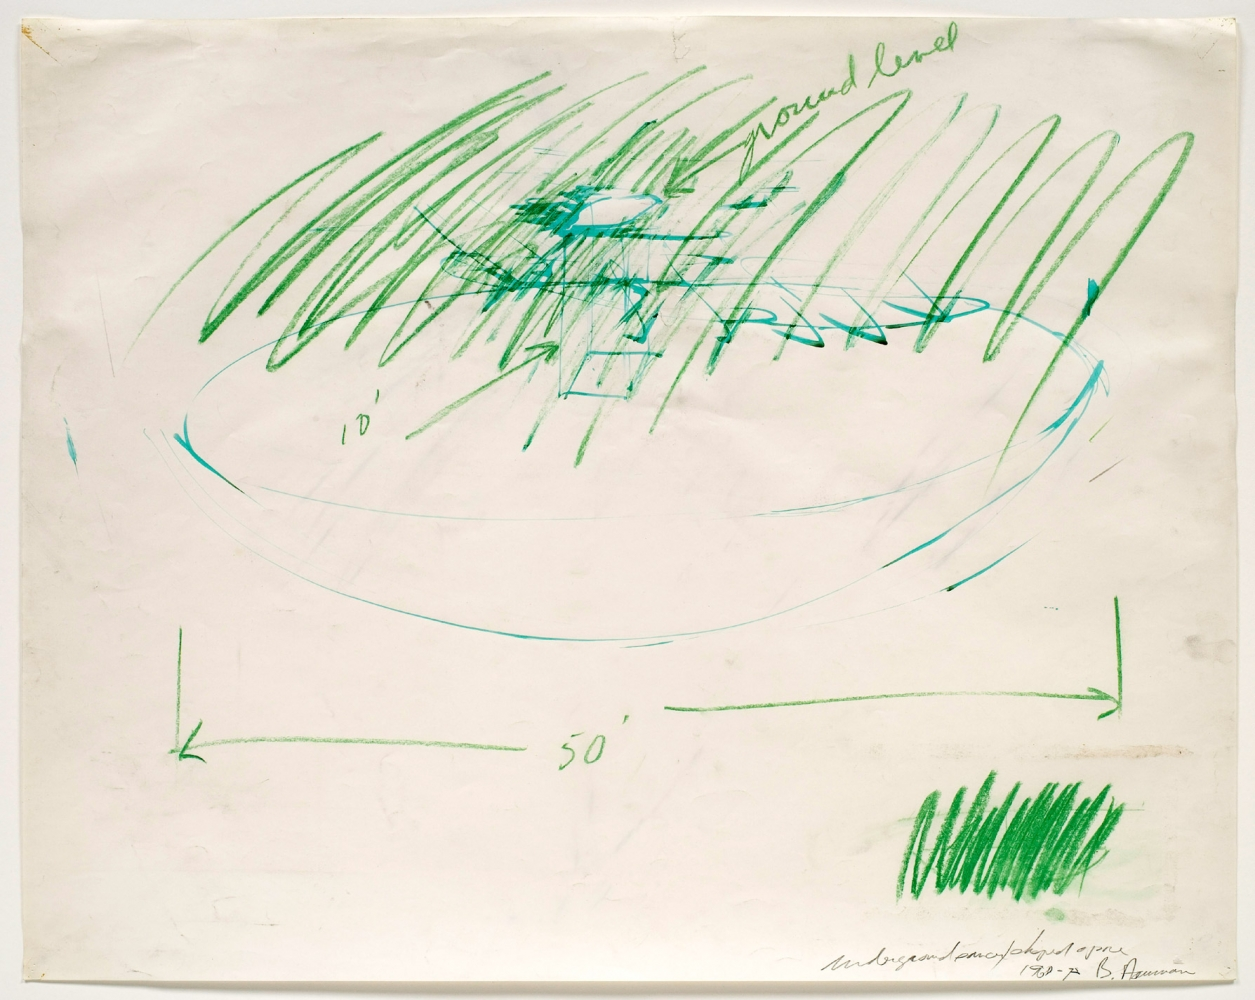 graphite and green pastel drawing of an installation plan with handwritten notes by the artist